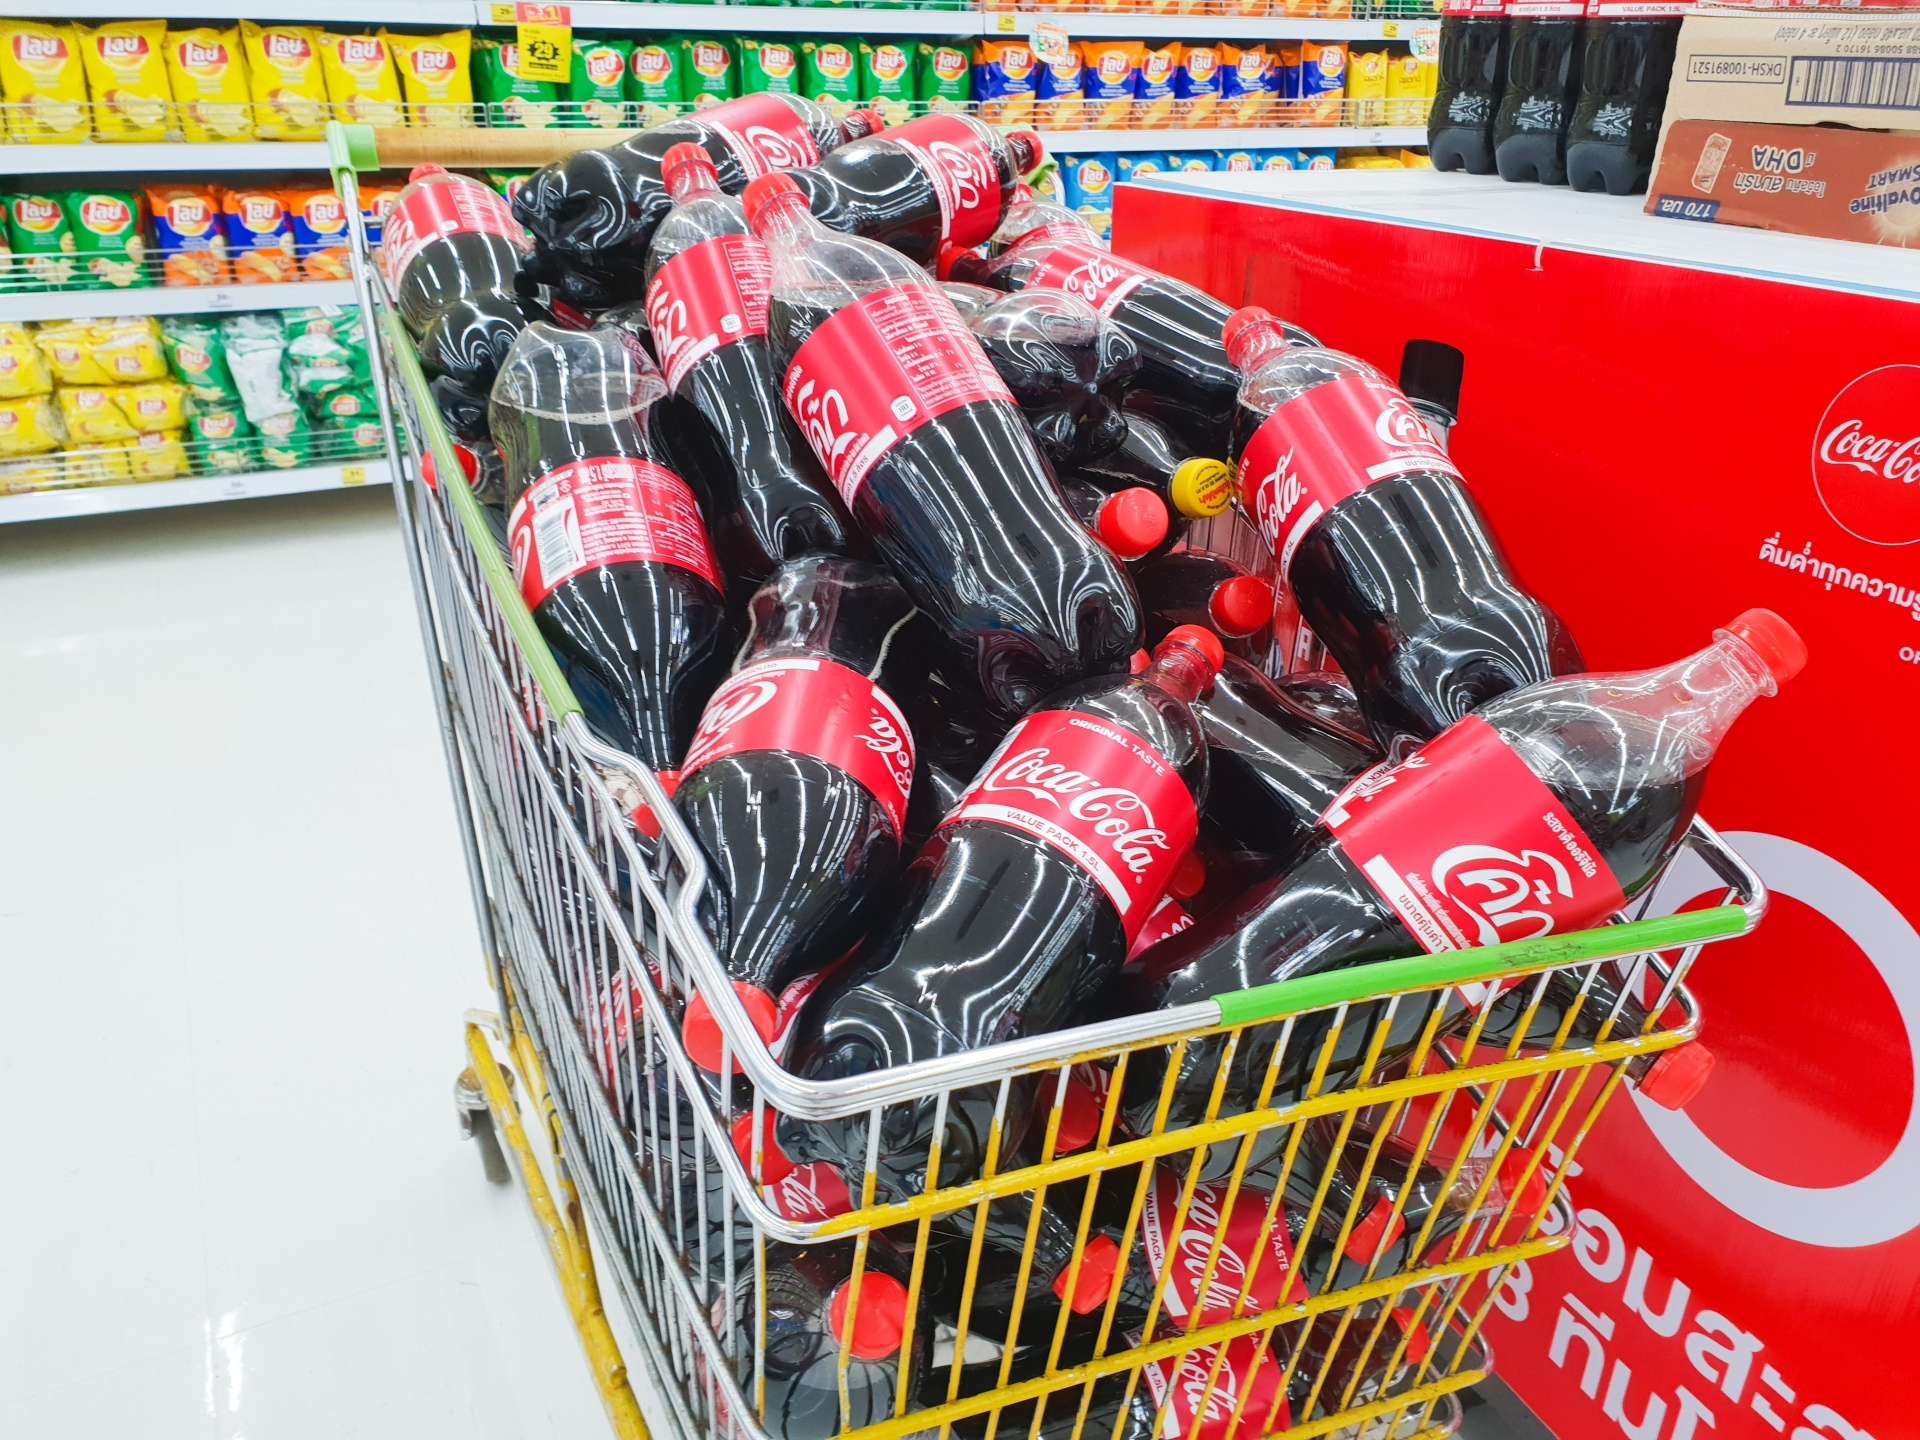 No surprise: Coca-cola is the world's largest plastic waste producer